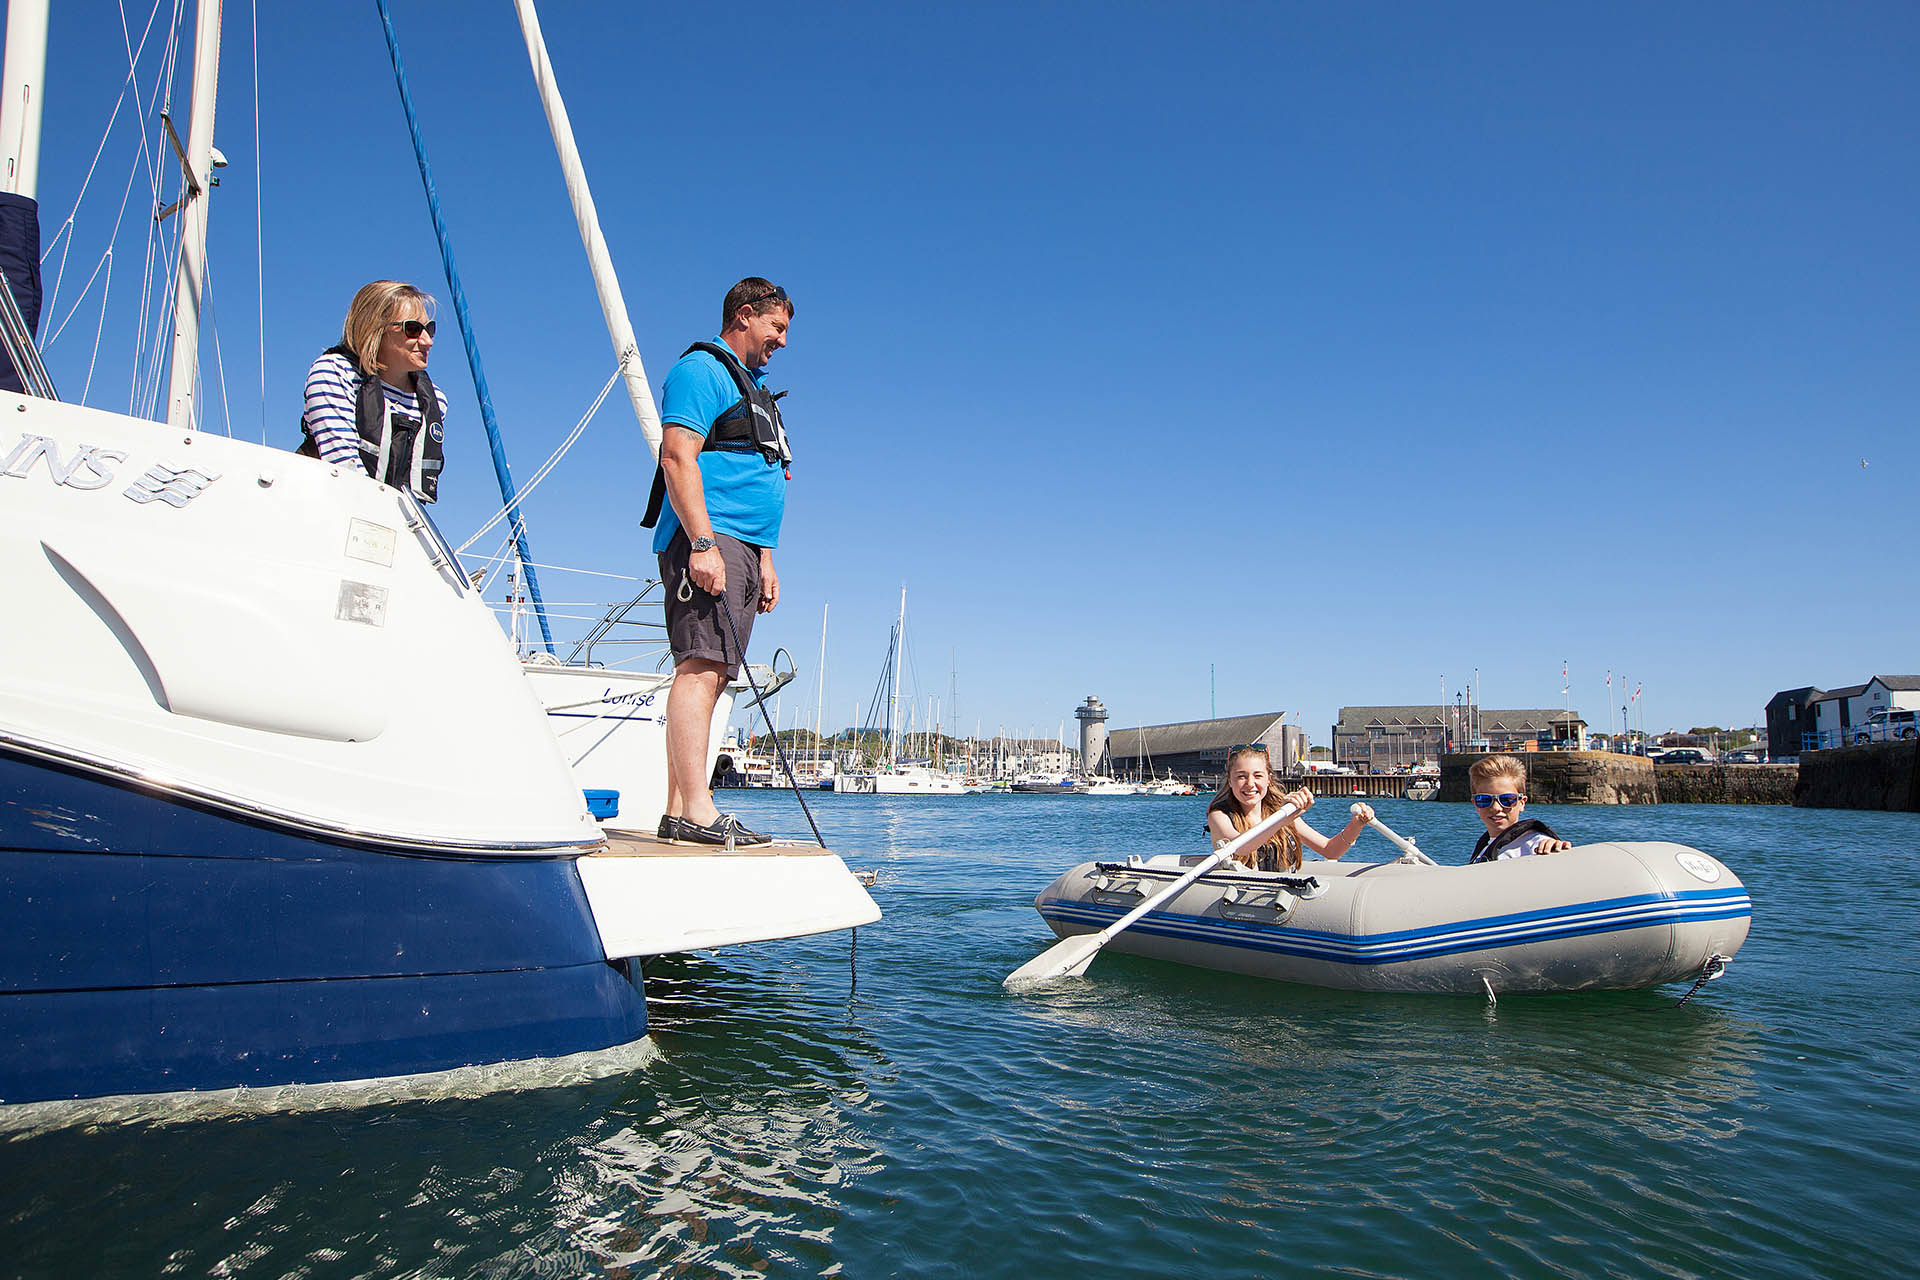 Falmouth-Haven-tender-kids-rowing